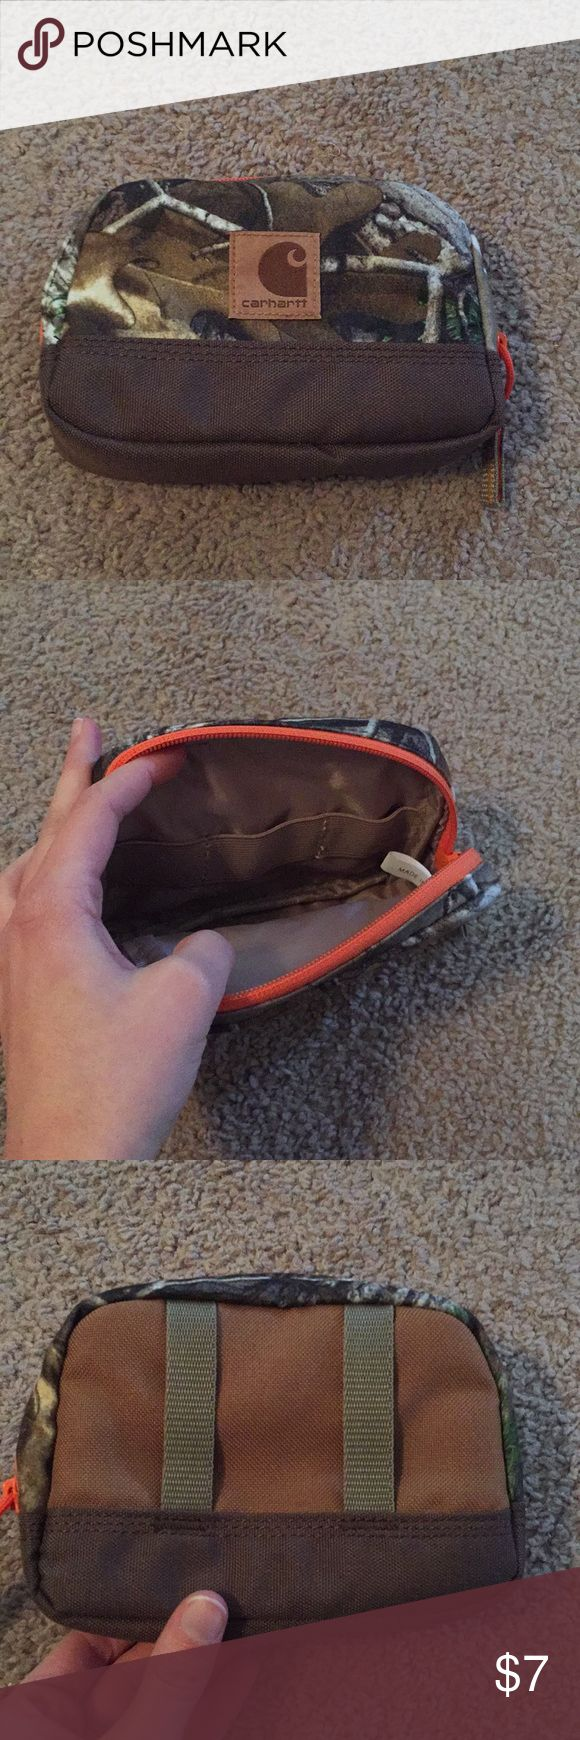 Carhartt Camouflage Pouch NWOT Hunt necessities pouch, about the size of a camera or phone Carhartt Bags